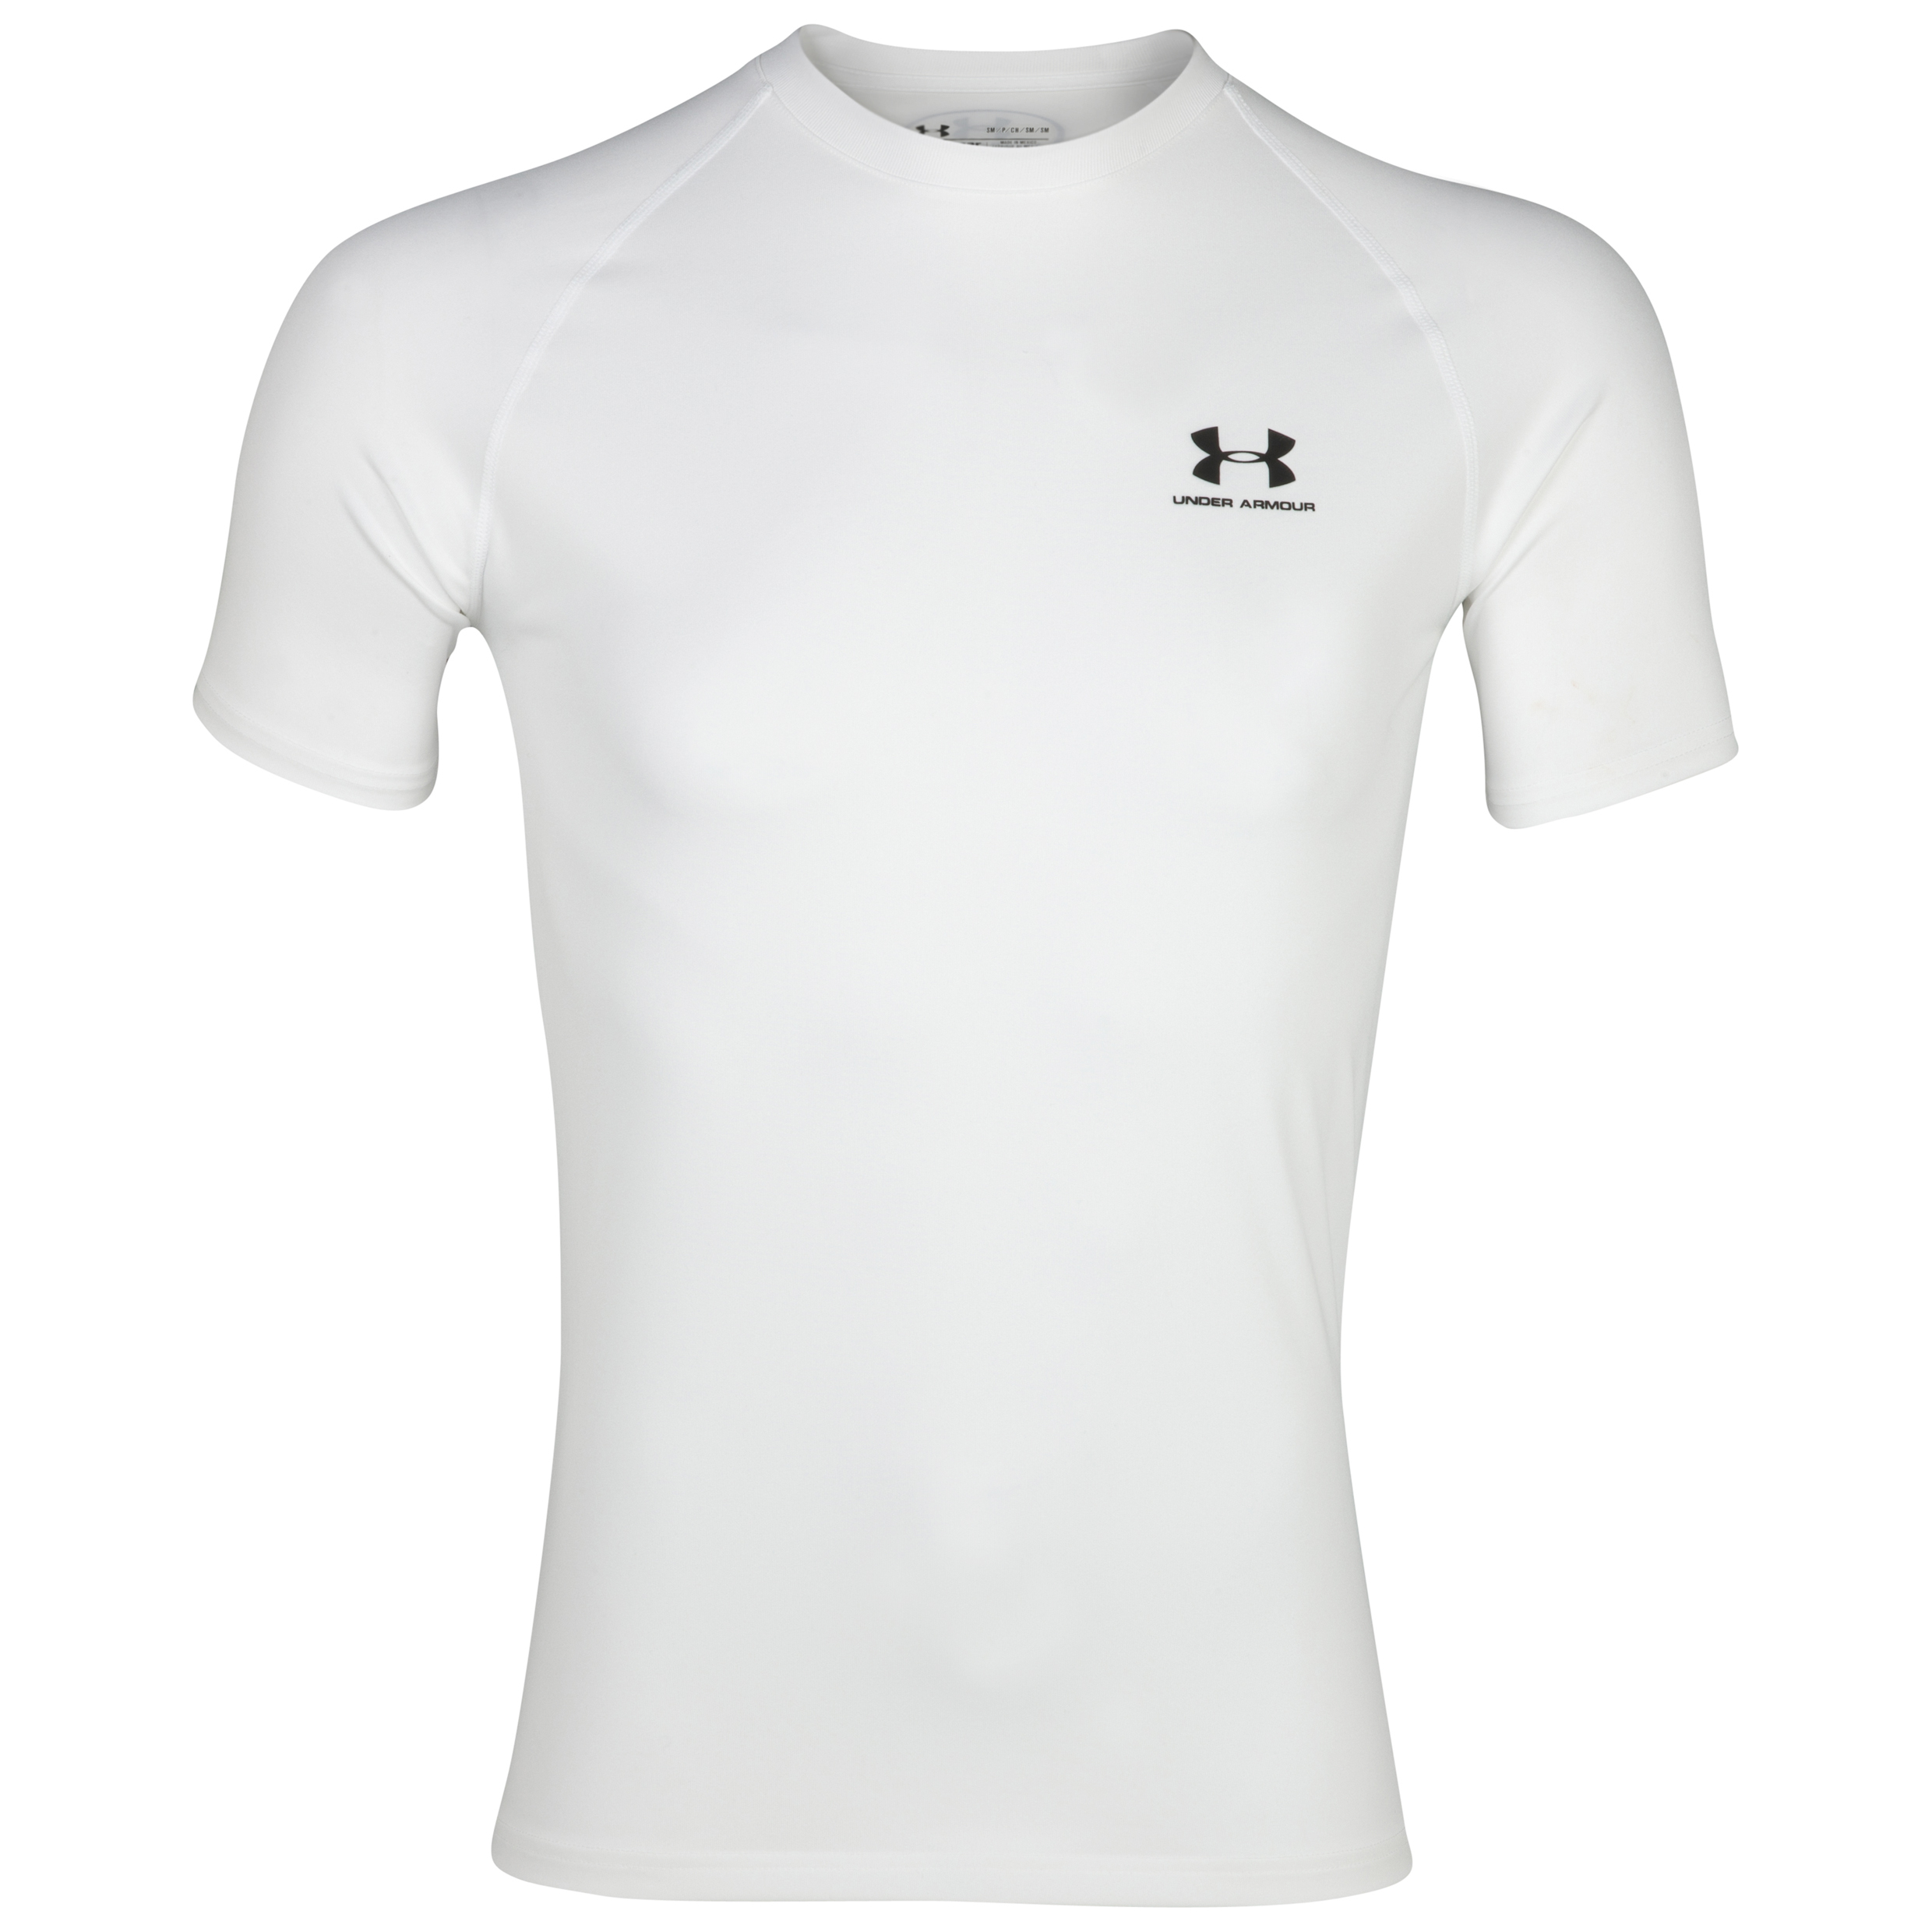 Under Armour Heatgear Vented Top - White/Steel